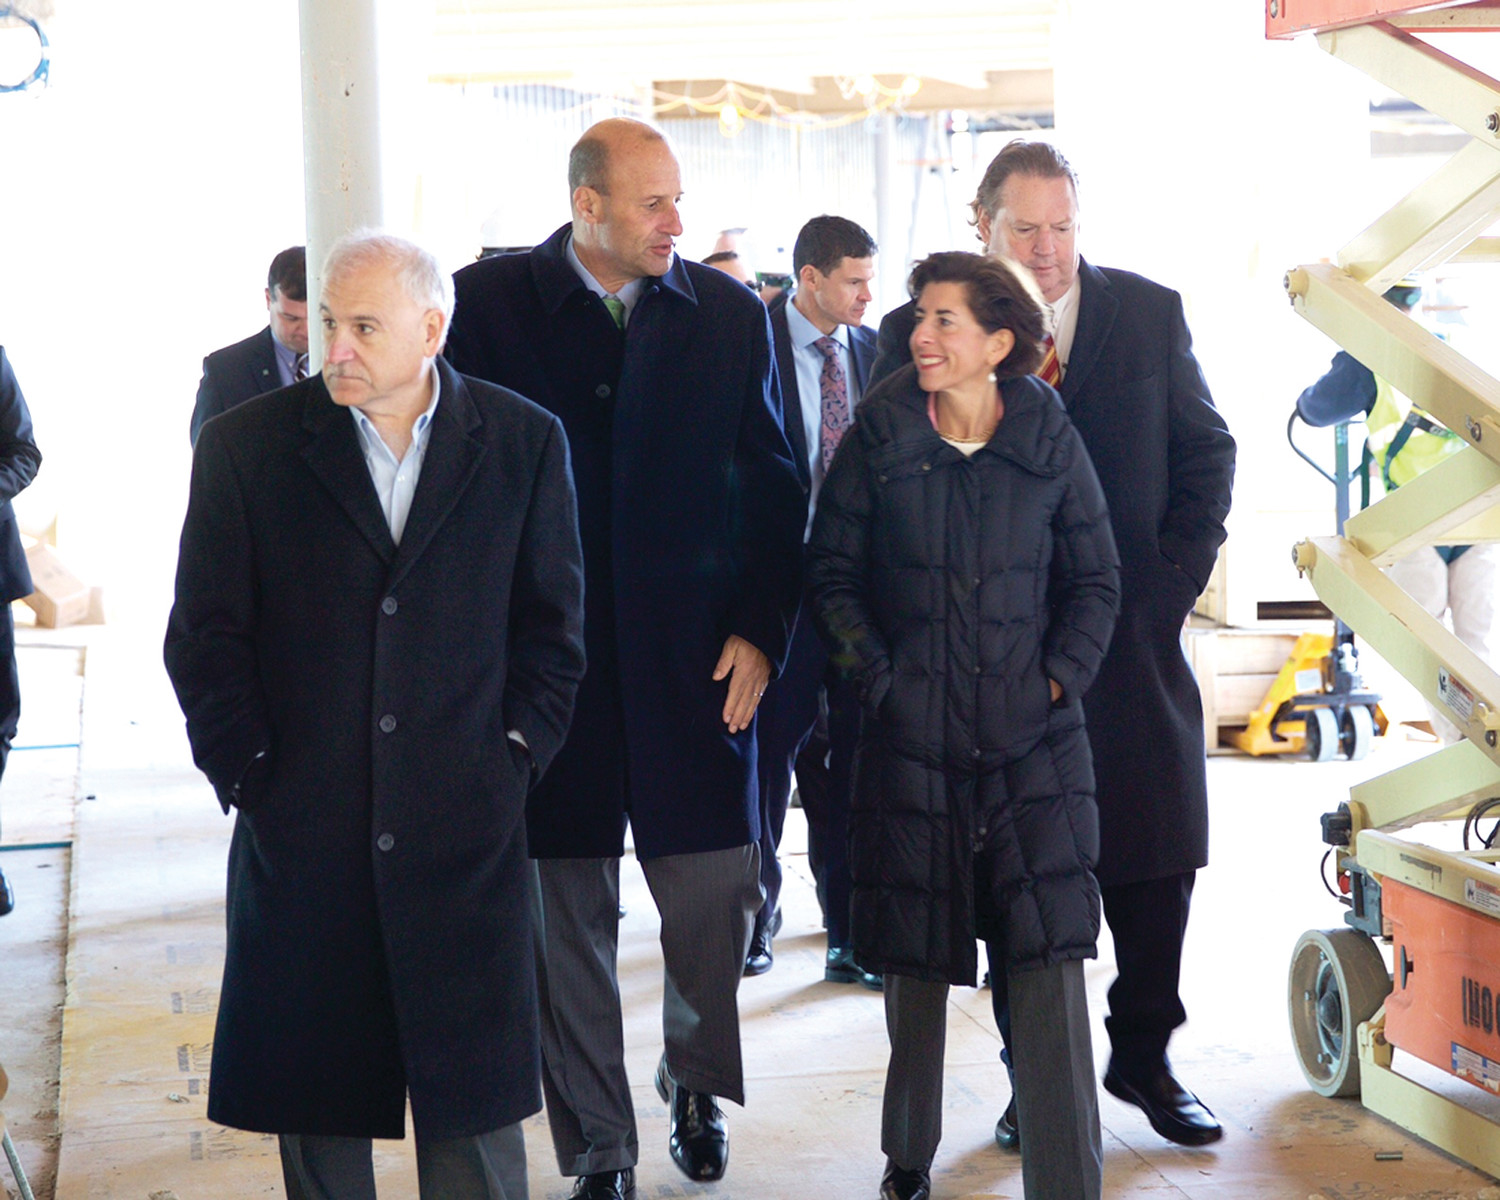 Below, Citizens Bank's Head of Property, Mike Knipper leads Governor Raimondo and Mayor Polisena on a tour of the Citizens Bank Johnston campus site. (Submitted photos)